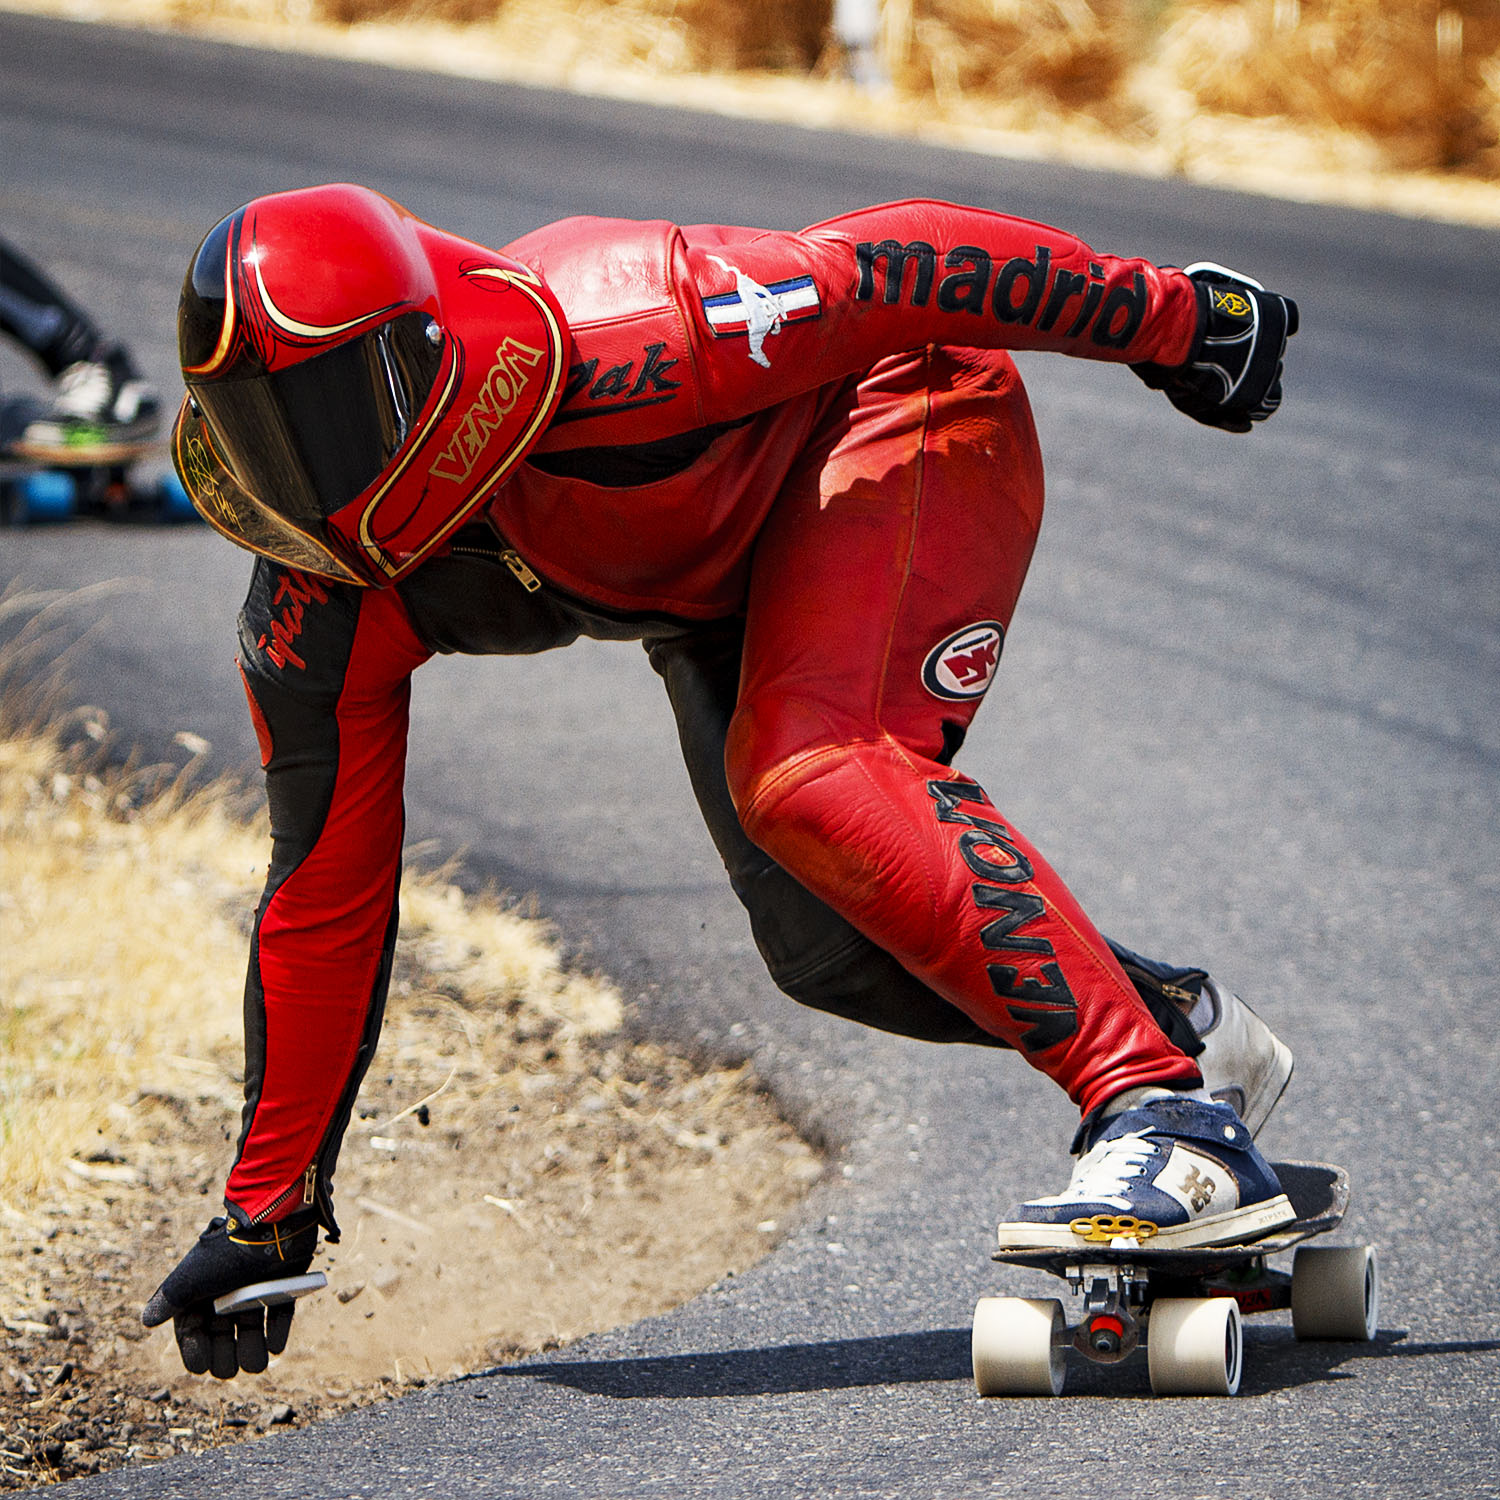 Zak Maytum racing at Maryhill in his Tanner Leaser painted original Fasttrack helmet, 2012.